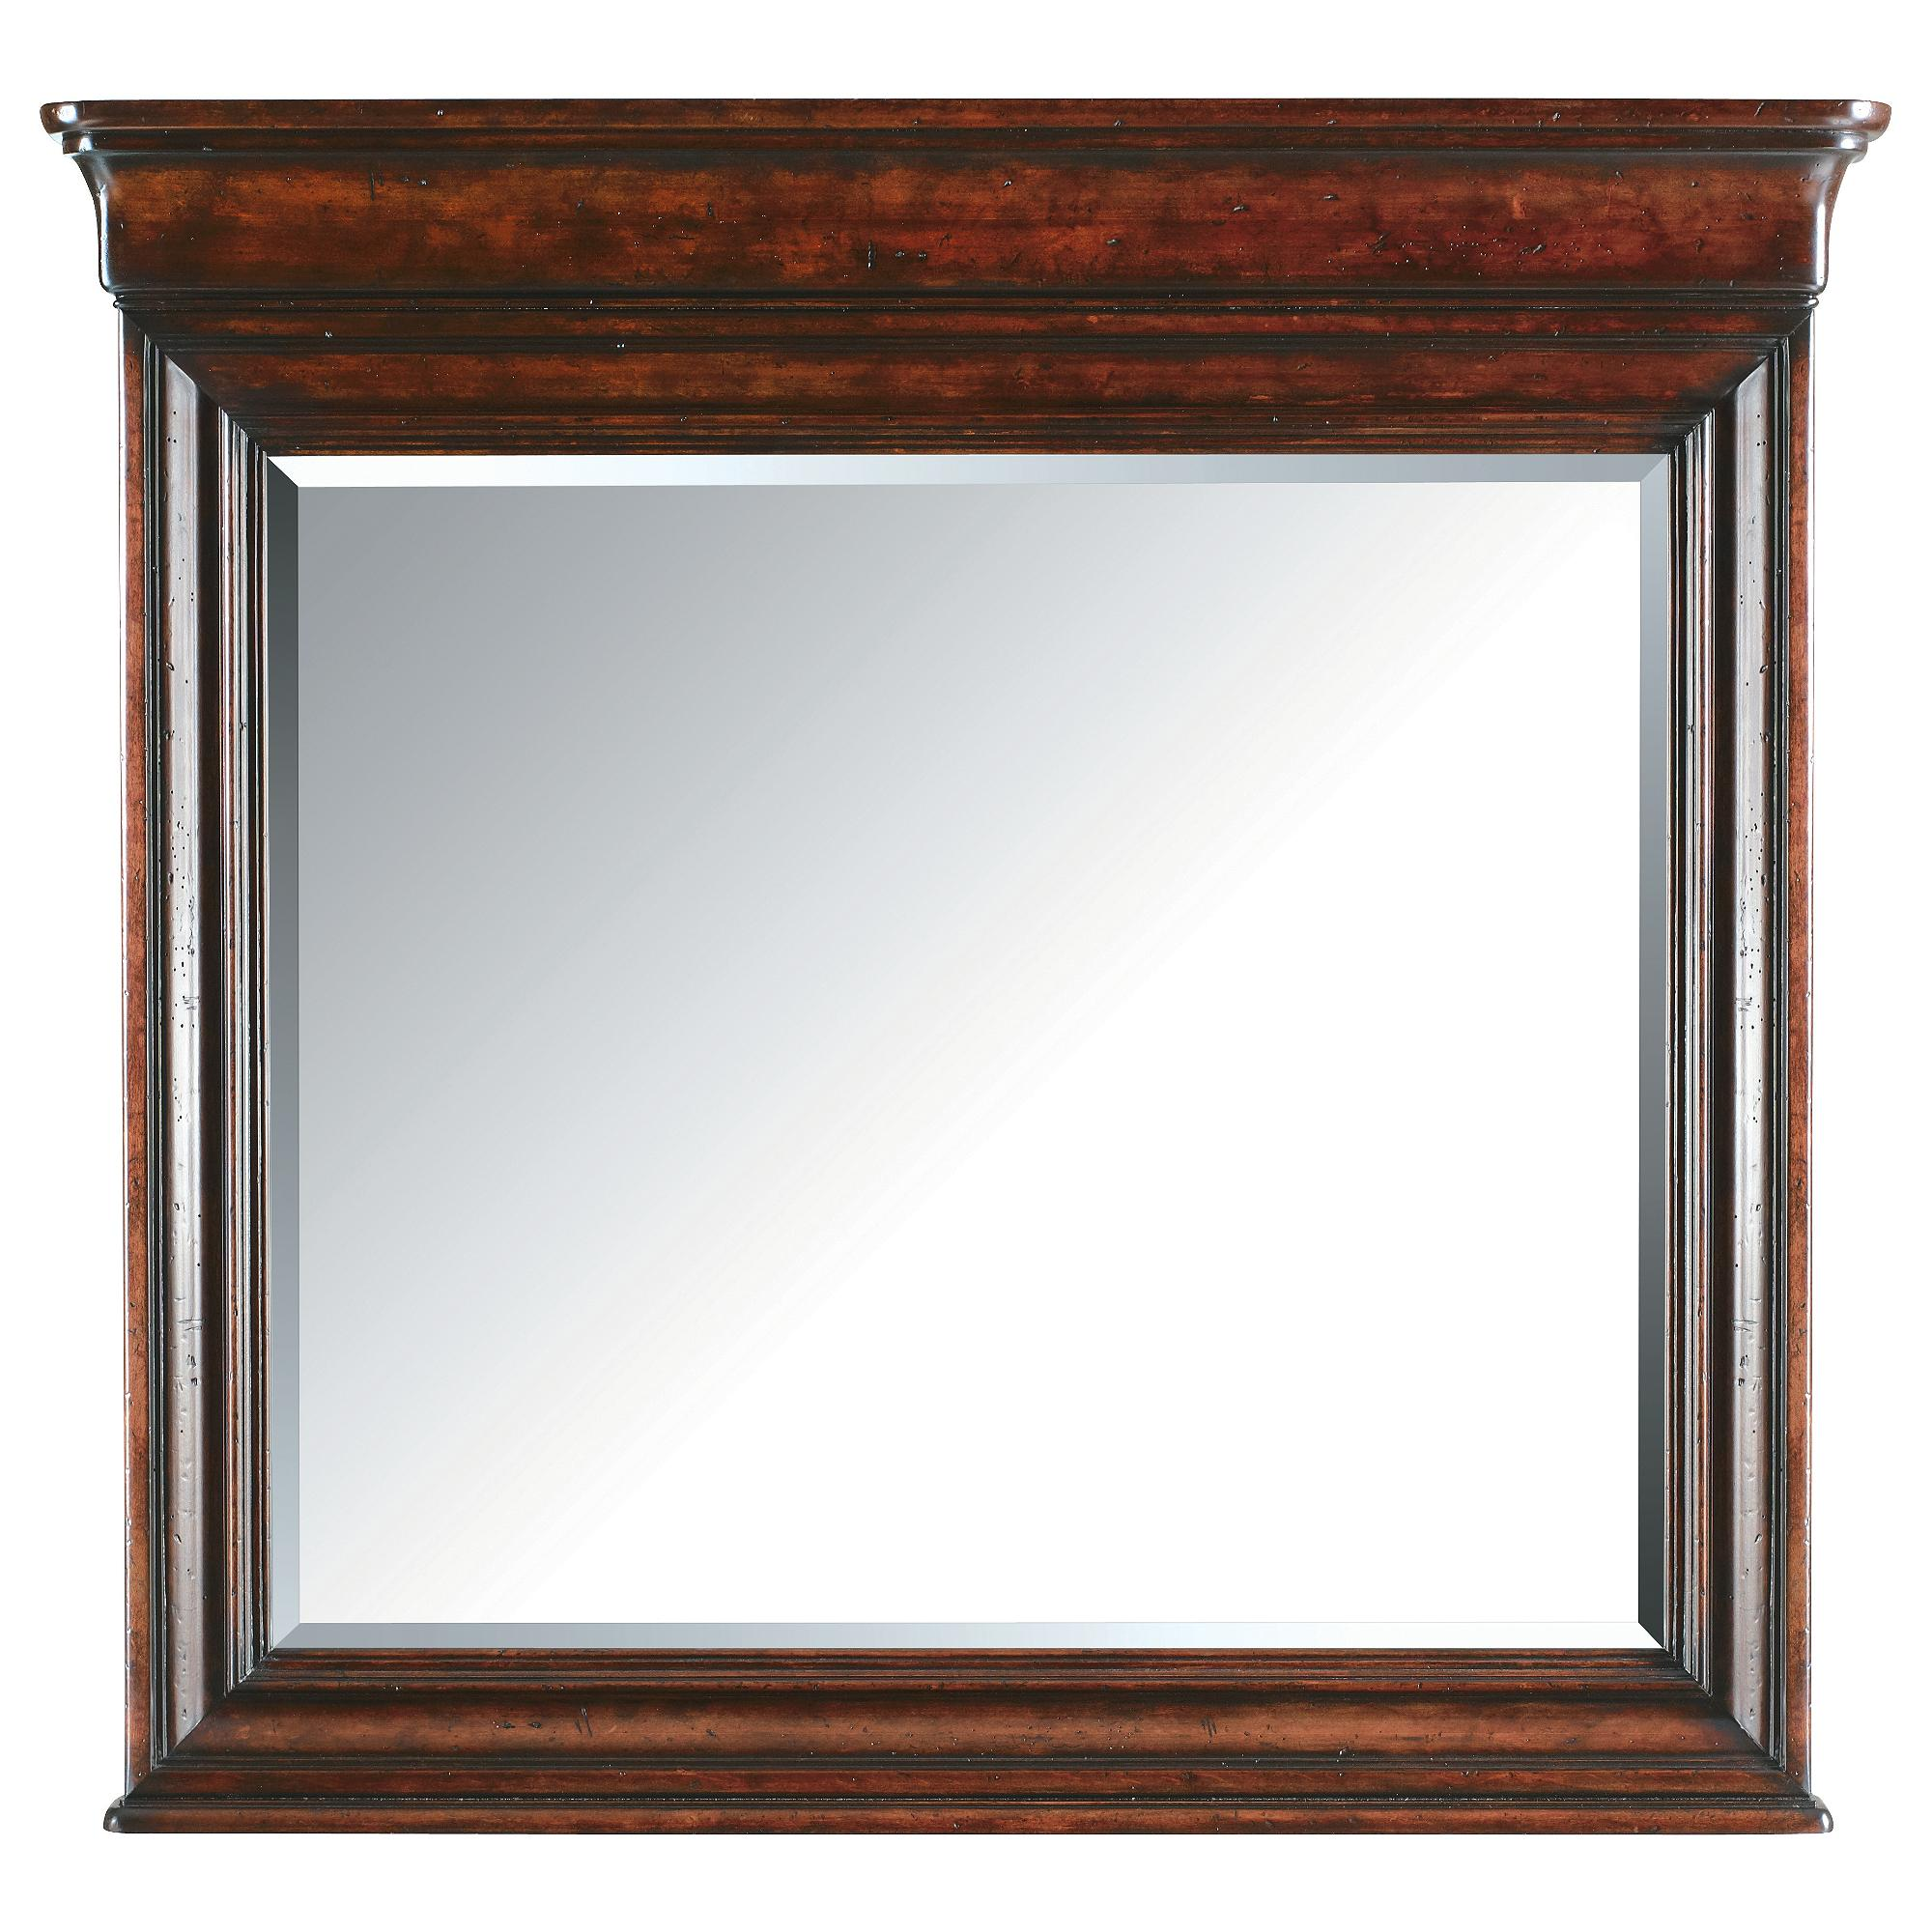 Stanley Furniture The Classic Portfolio - Louis Philippe Landscape Mirror - Item Number: 058-13-30